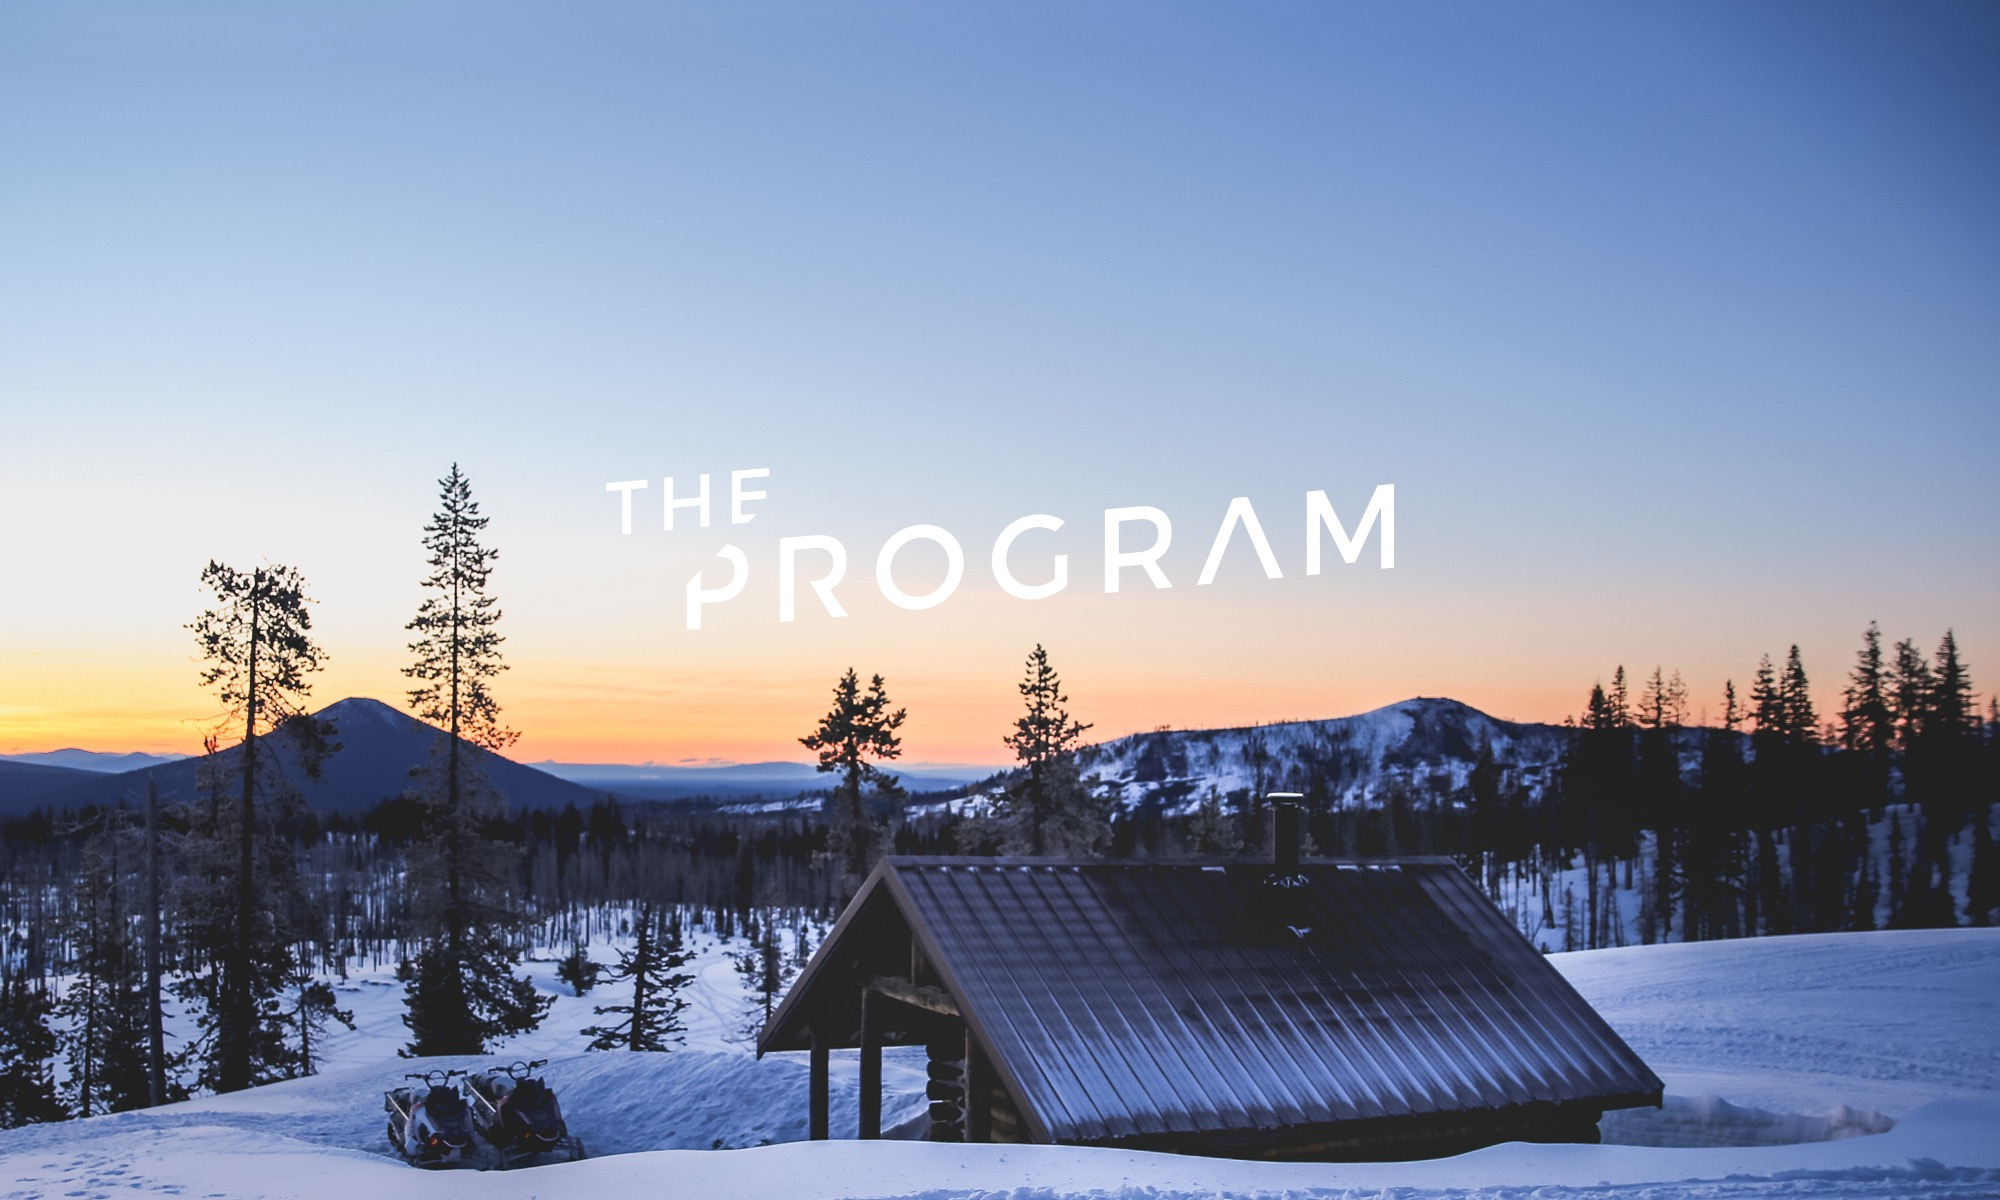 TheProgram_logo-refresh_v4_2.jpg